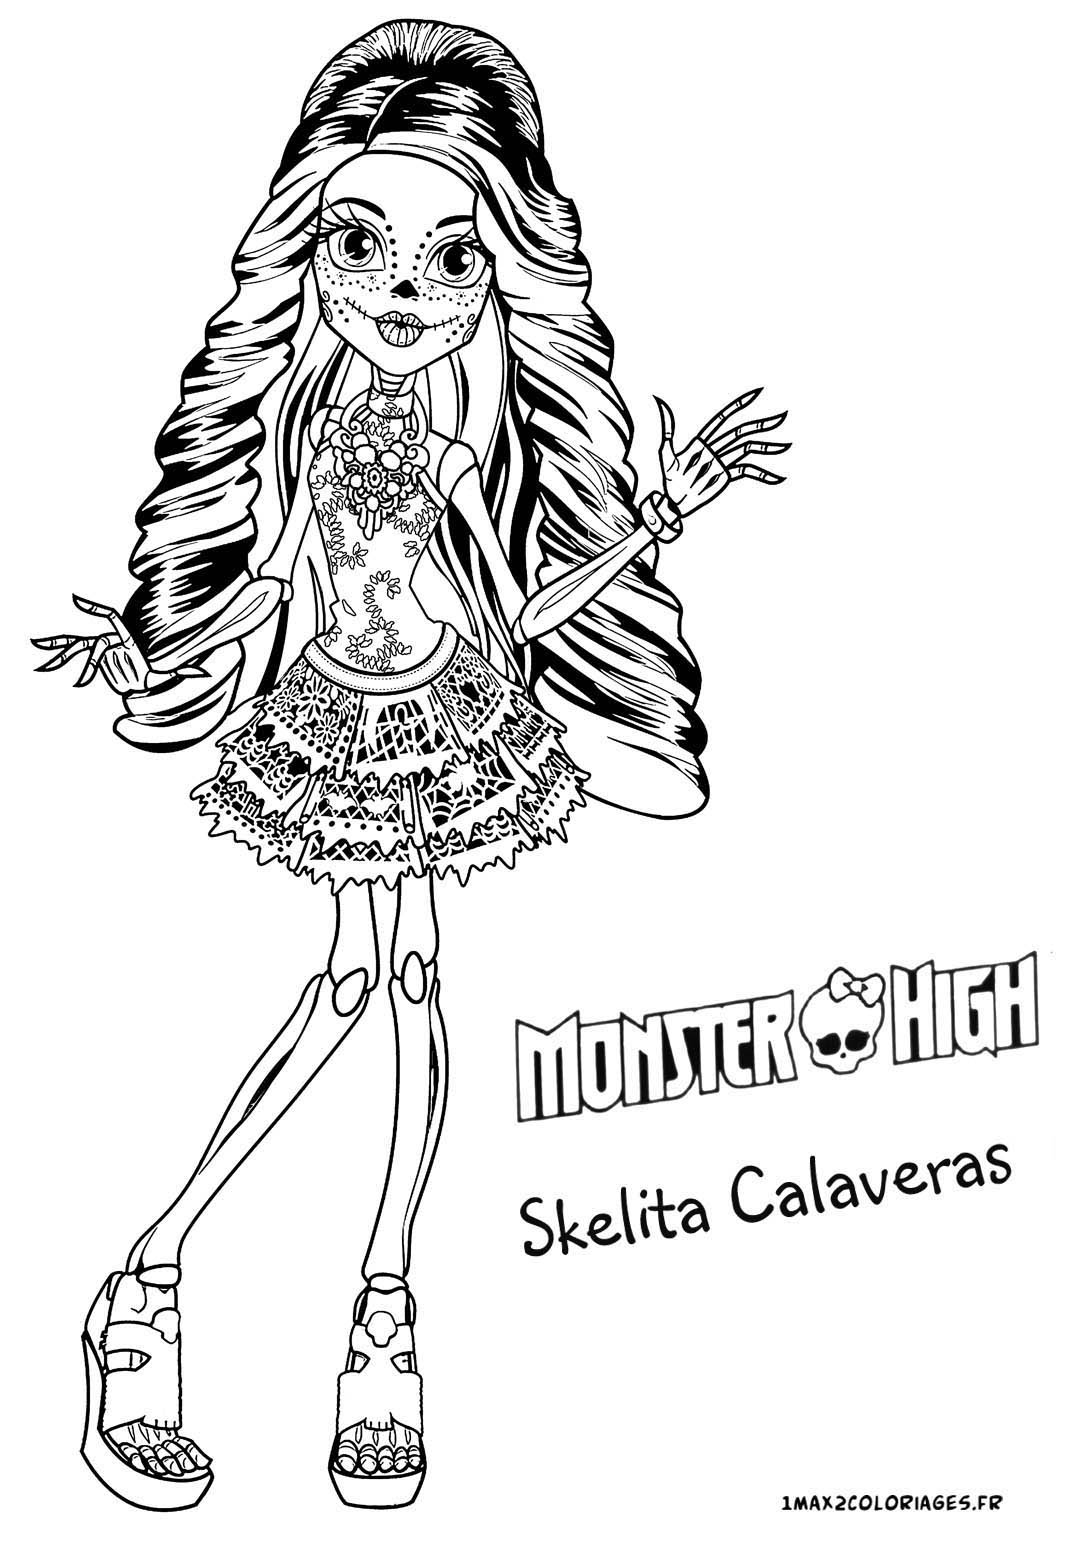 Beautiful Monster High coloring page to print and color